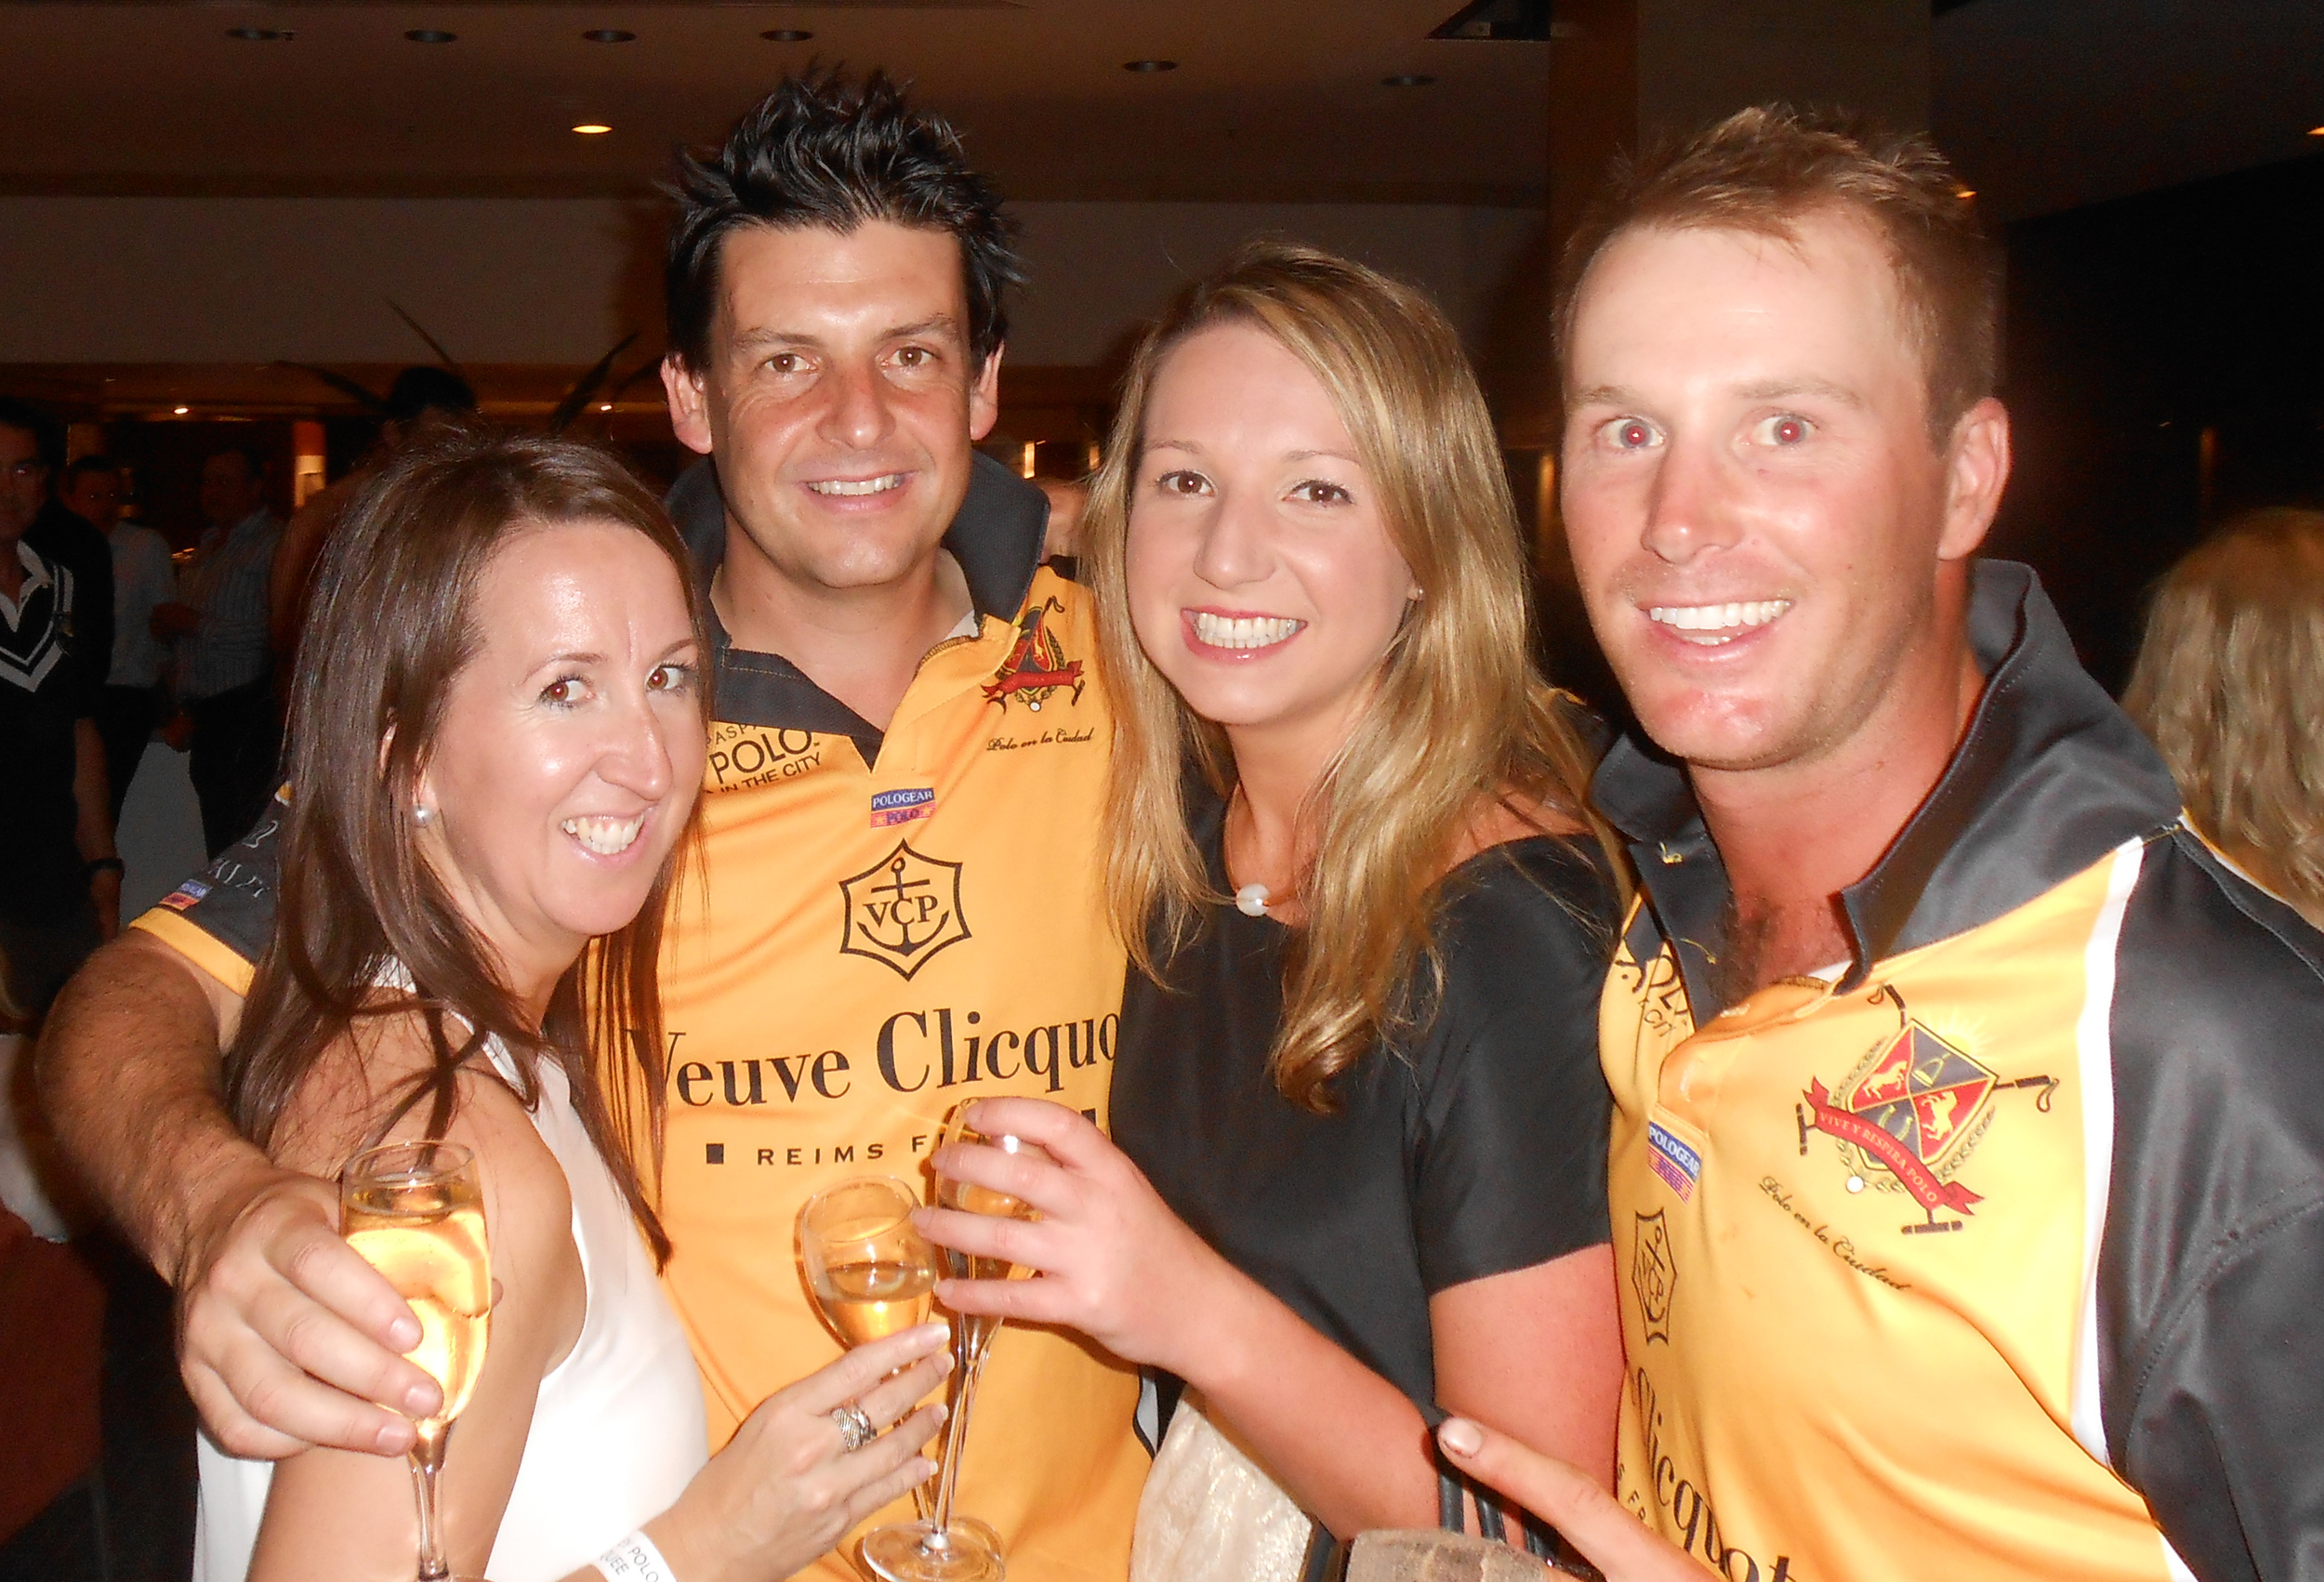 Polo players with Veuve Clicquot brand ambassadors at the after party